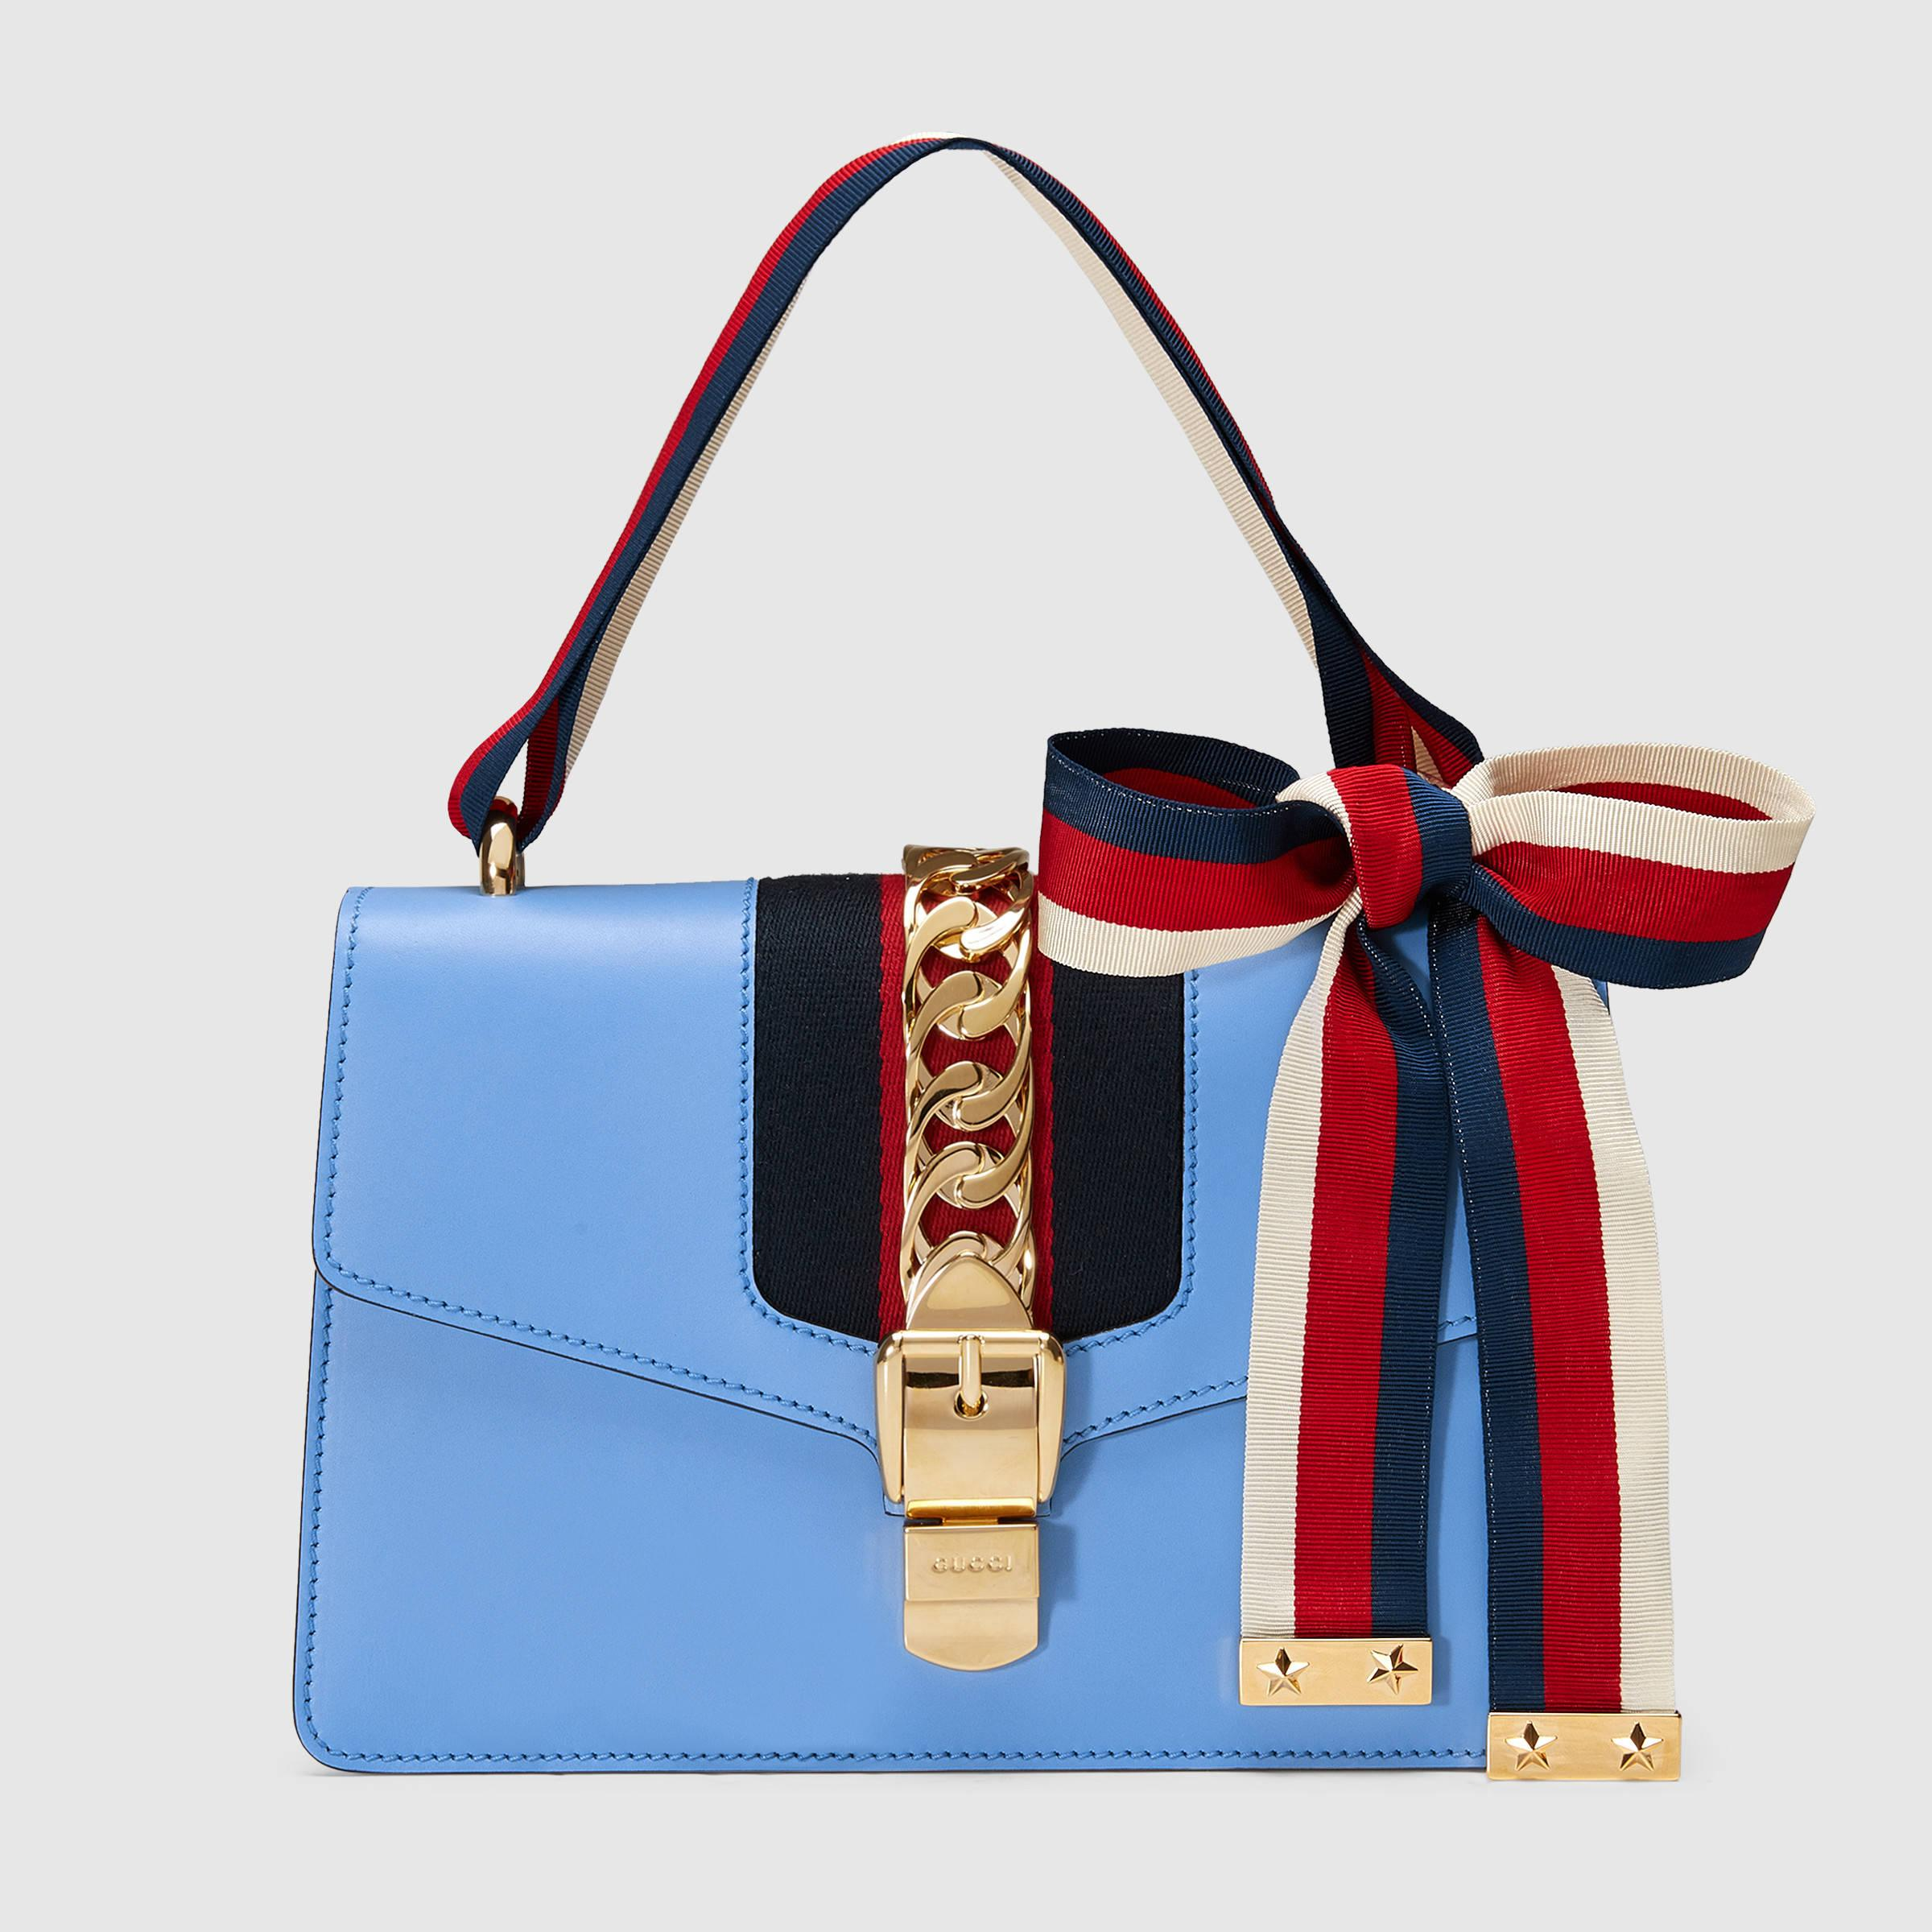 0d3702137965 Gucci Sylvie Leather Shoulder Bag in Blue - Lyst